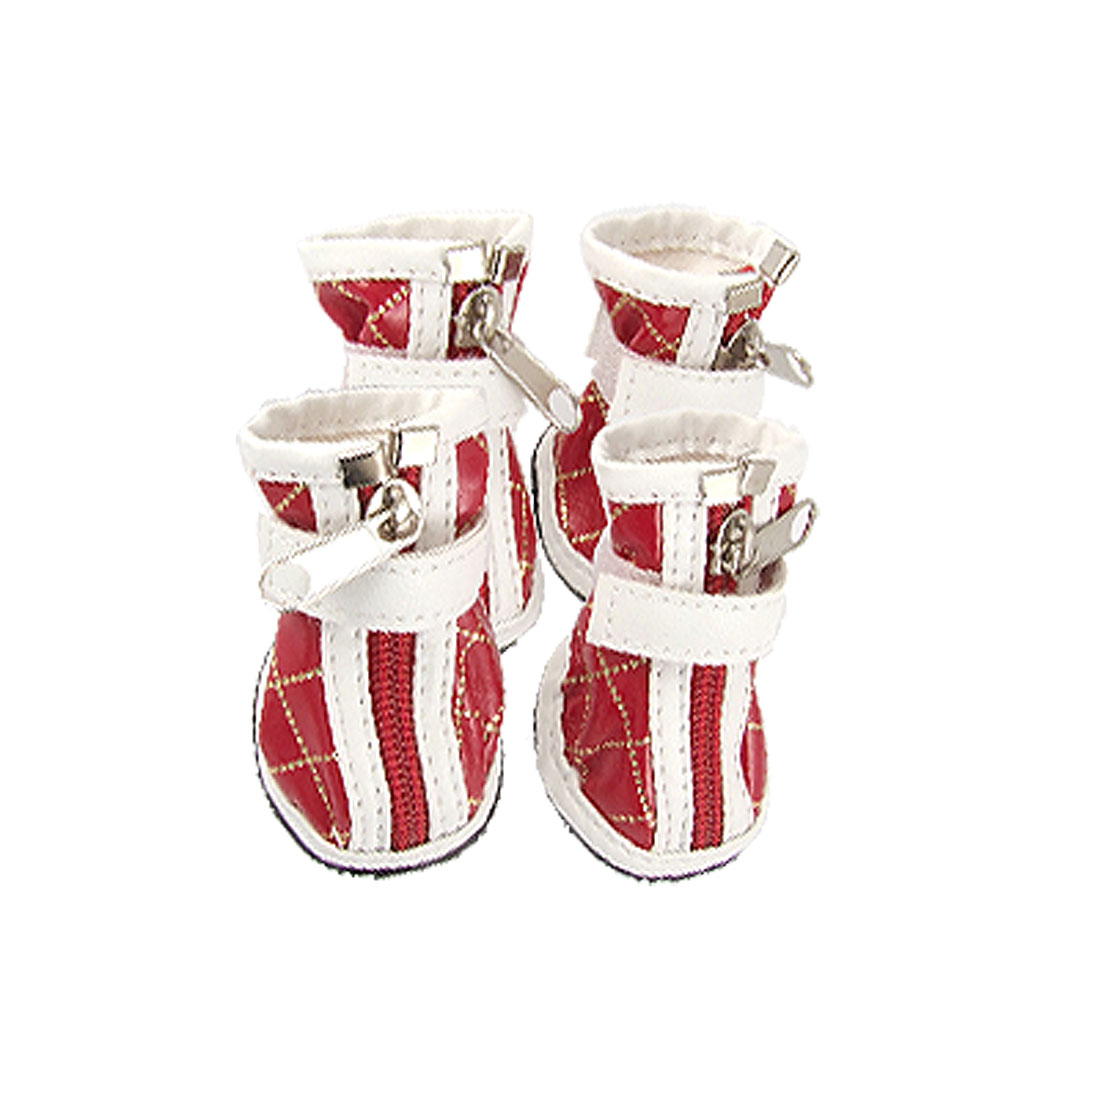 4 PcsDog Nonslip Sole Zipped Faux Leather Boots Red White Size 1